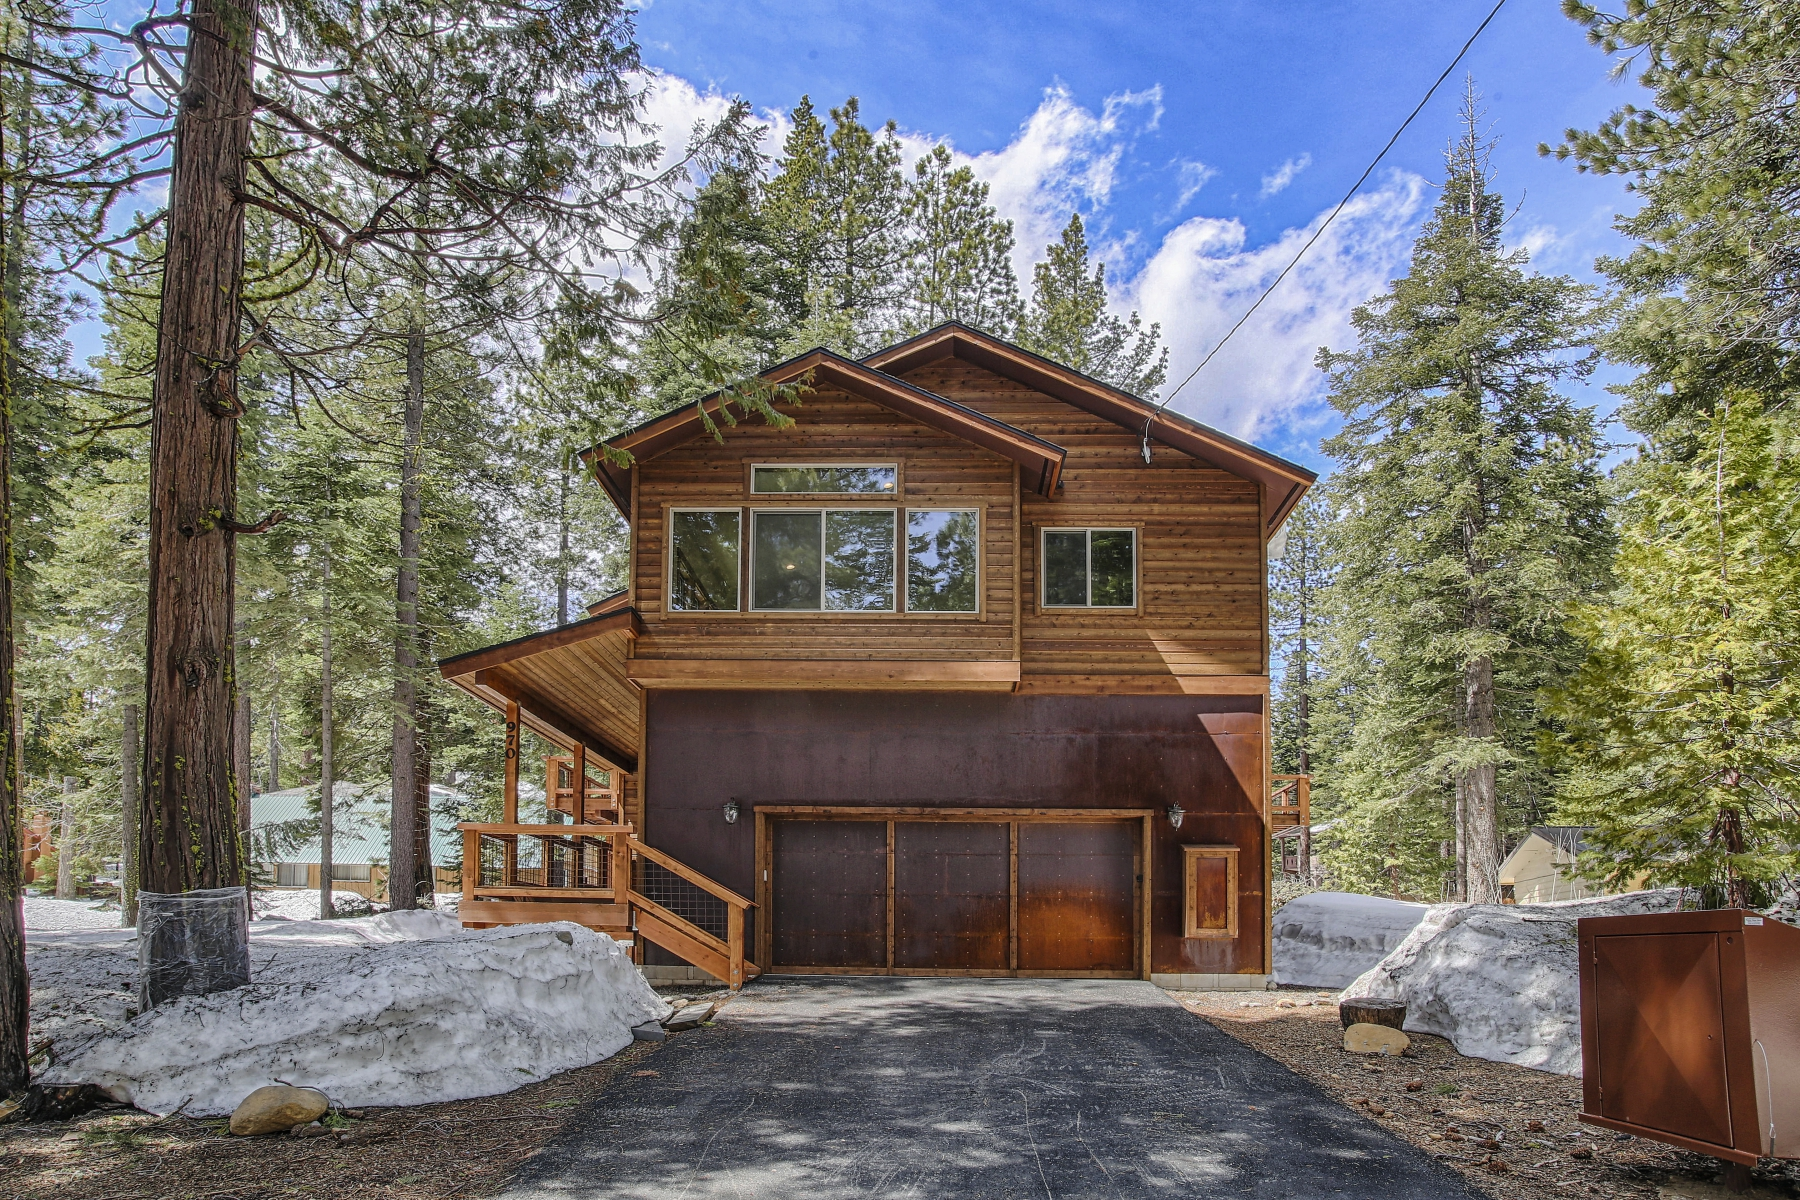 Villa per Vendita alle ore 970 The Drive Tahoe City, California, 96145 Lake Tahoe, Stati Uniti